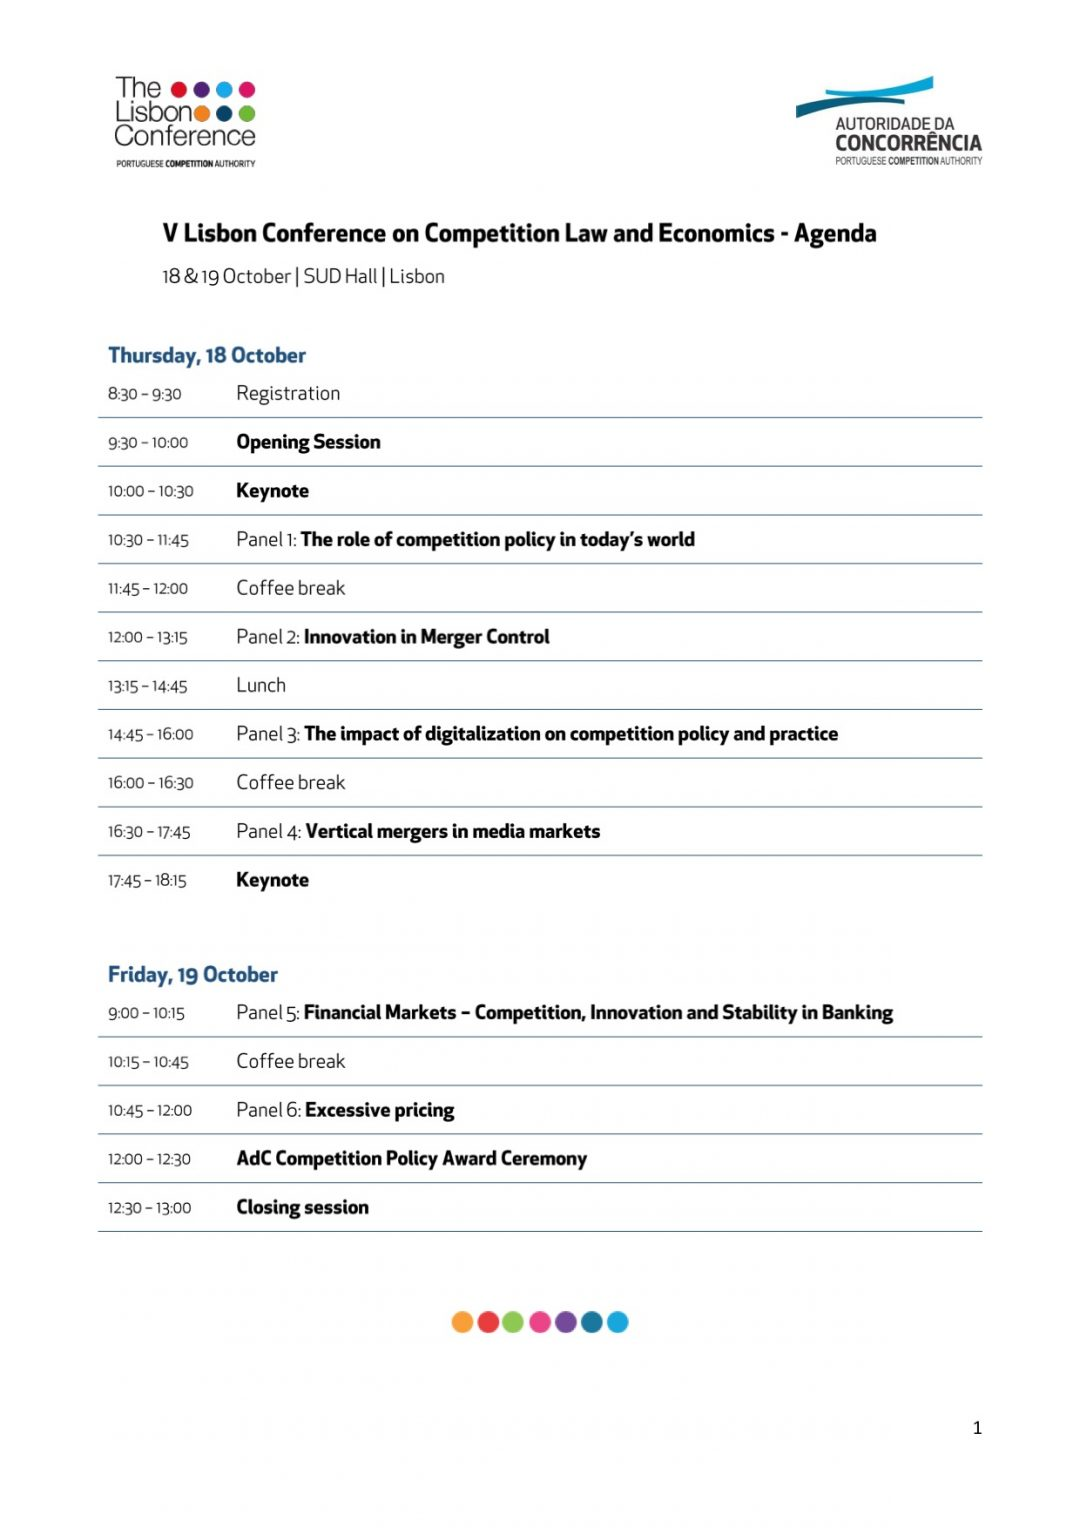 Programme – UNCTAD MENA Participates at the V Lisbon Conference in Competition Law and Economics,18-19 Oct 2018 Lisbon Portugal